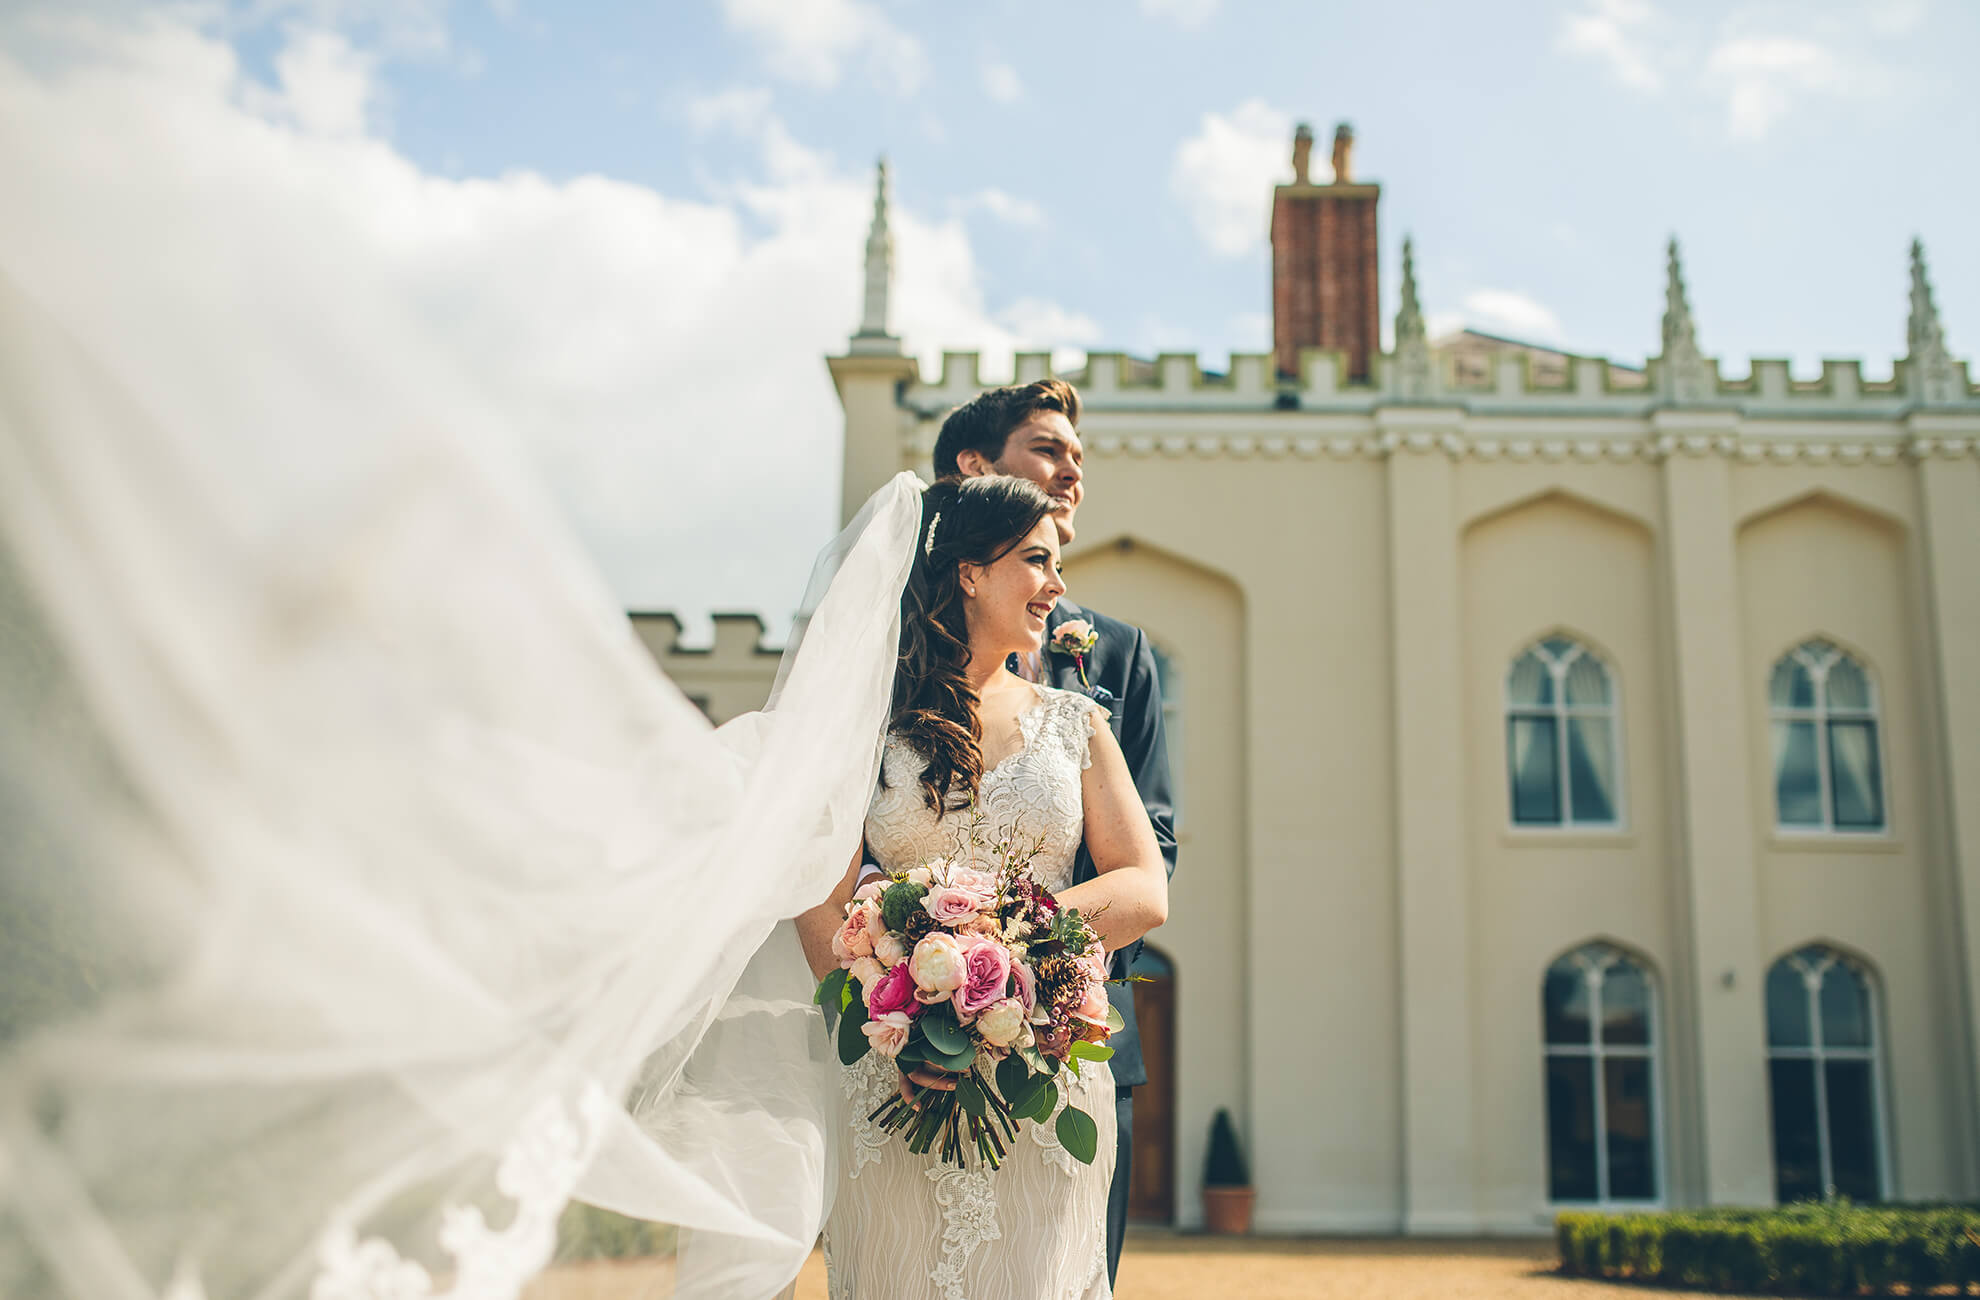 The new husband and wife take a moment in front of the Edwardian House at Combermere Abbey in Cheshire